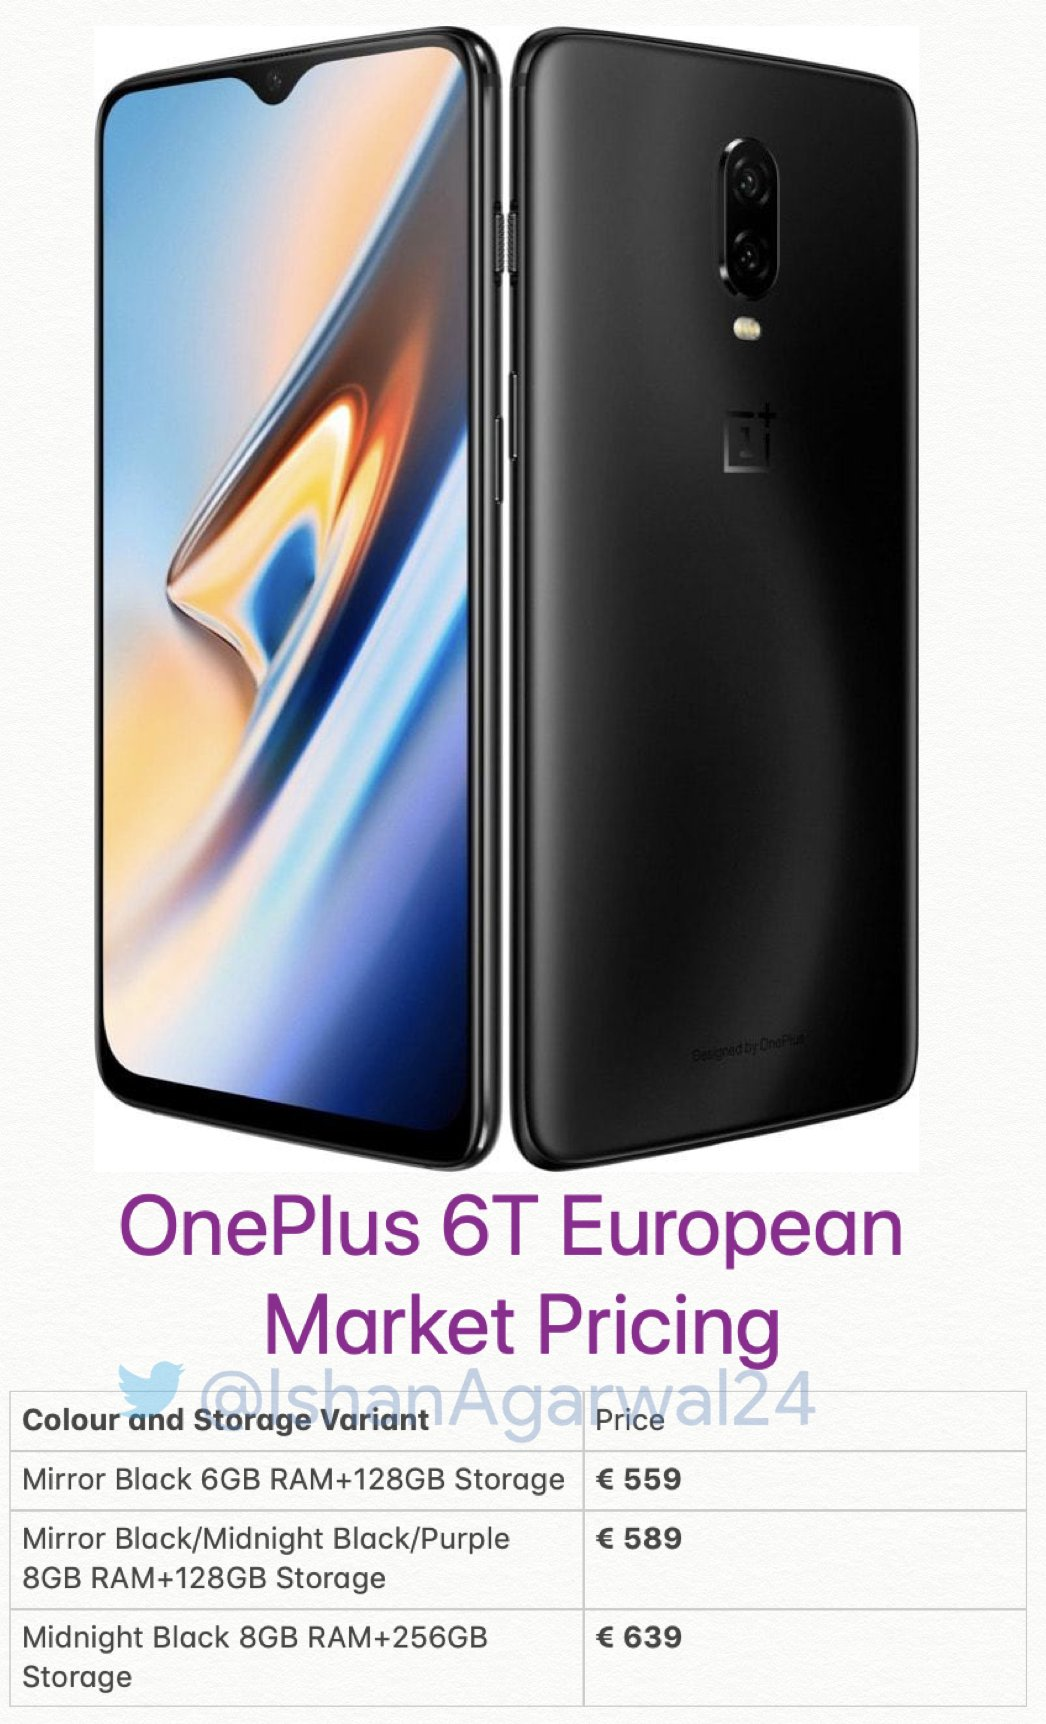 OnePlus 6T European Pricing